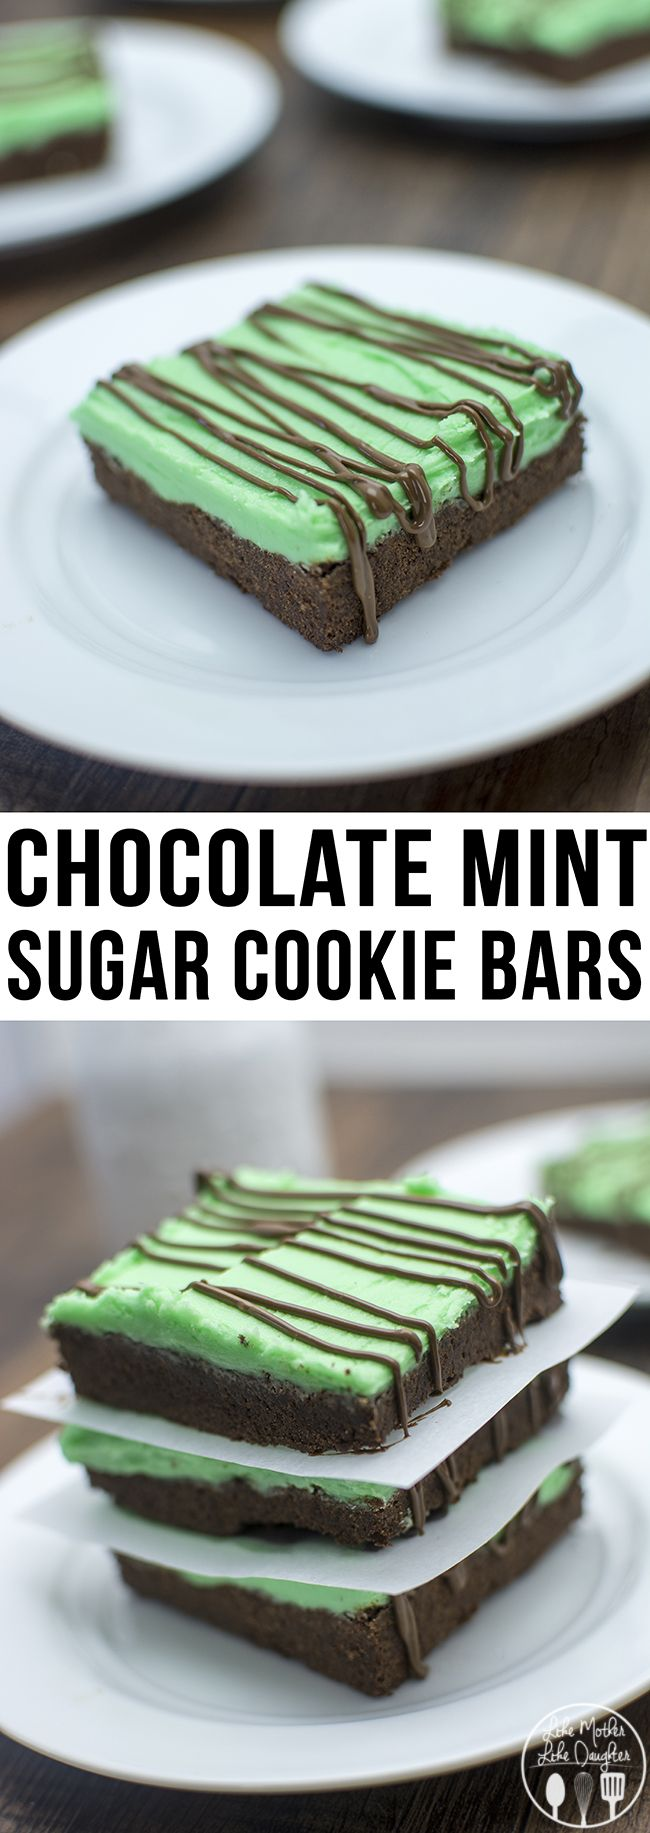 These delicious sugar bars have the perfect combo of chocolate and mint flavors.